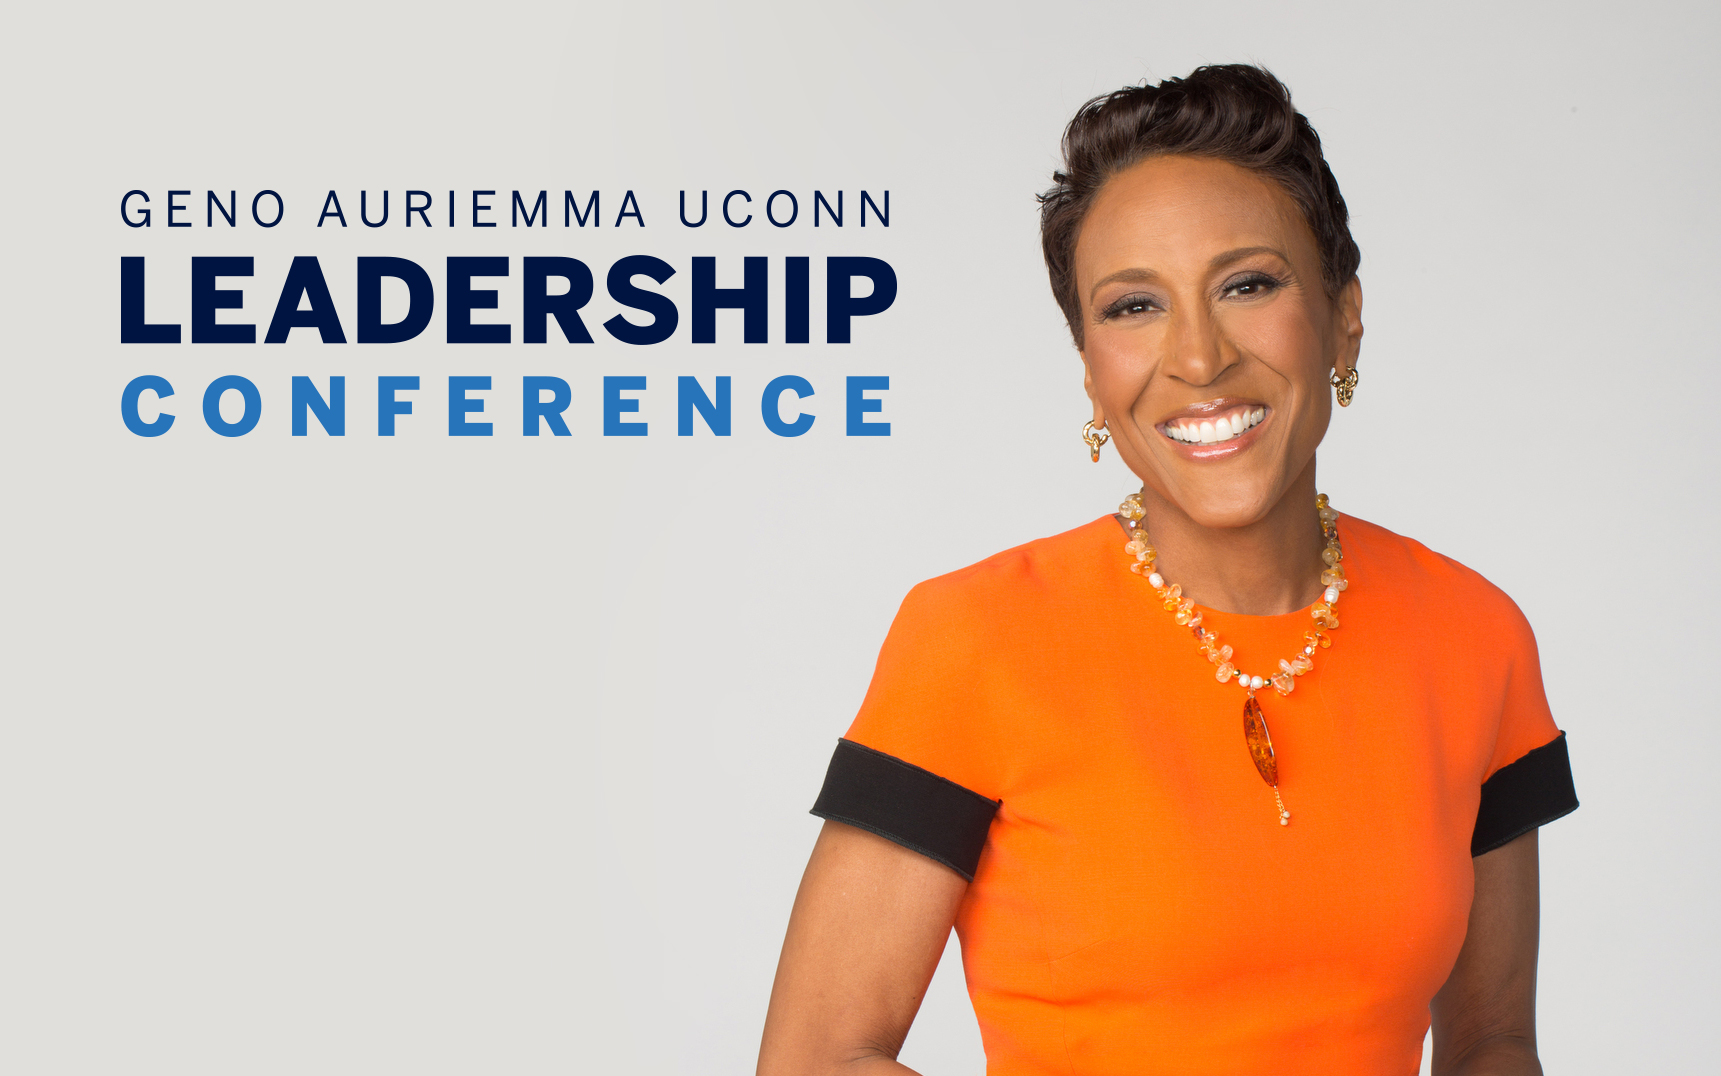 Good Morning America's Robin Roberts to Headline Geno Auriemma UConn Leadership Conference in April